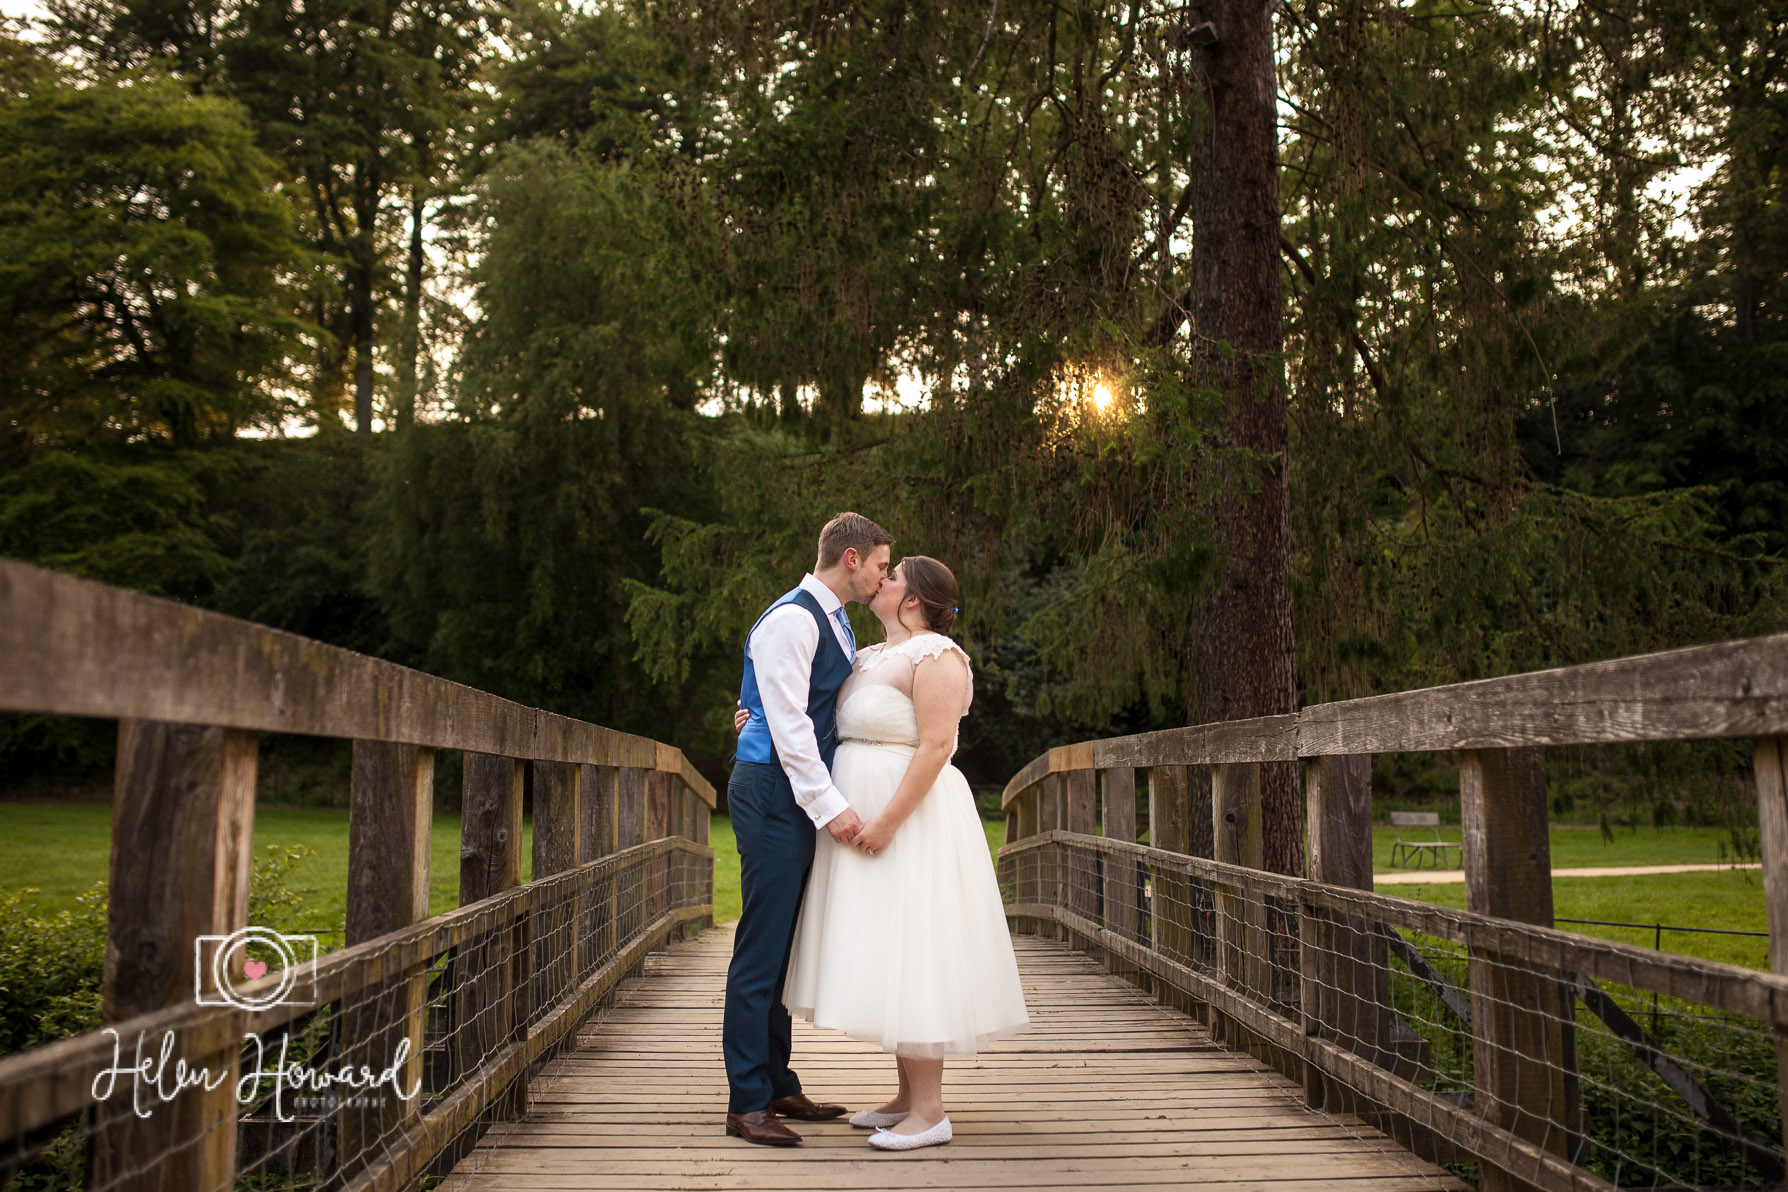 Bride and Groom at sunset at Quarry Bank Mill Weddings Styal-1.jpg